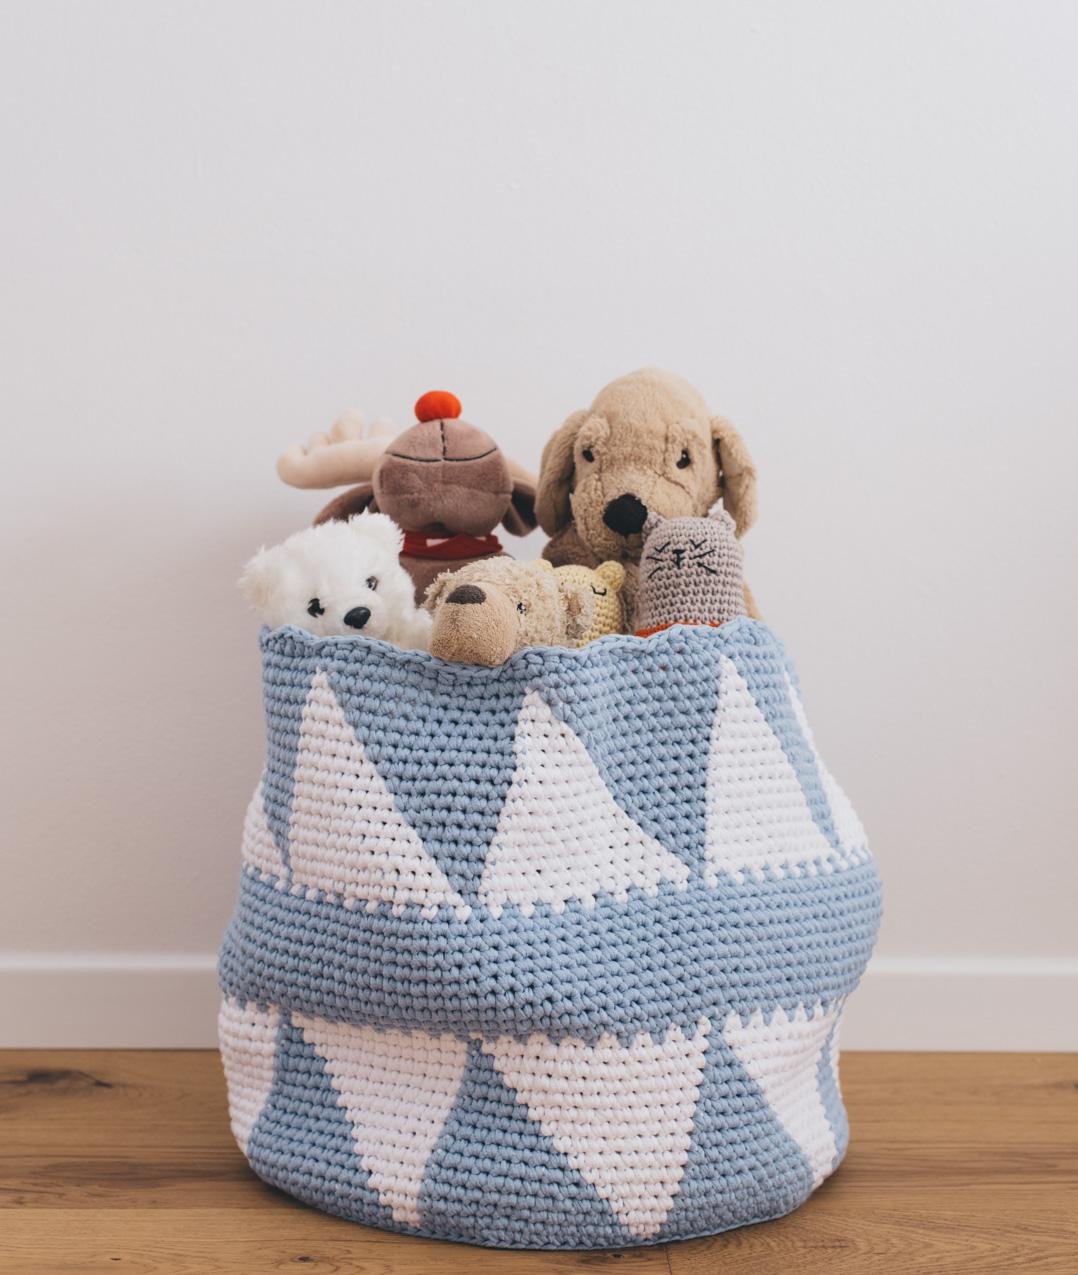 Promo KNIT20 - CasaCasa - Cotone - HAPPY TOYS BASKET - 1